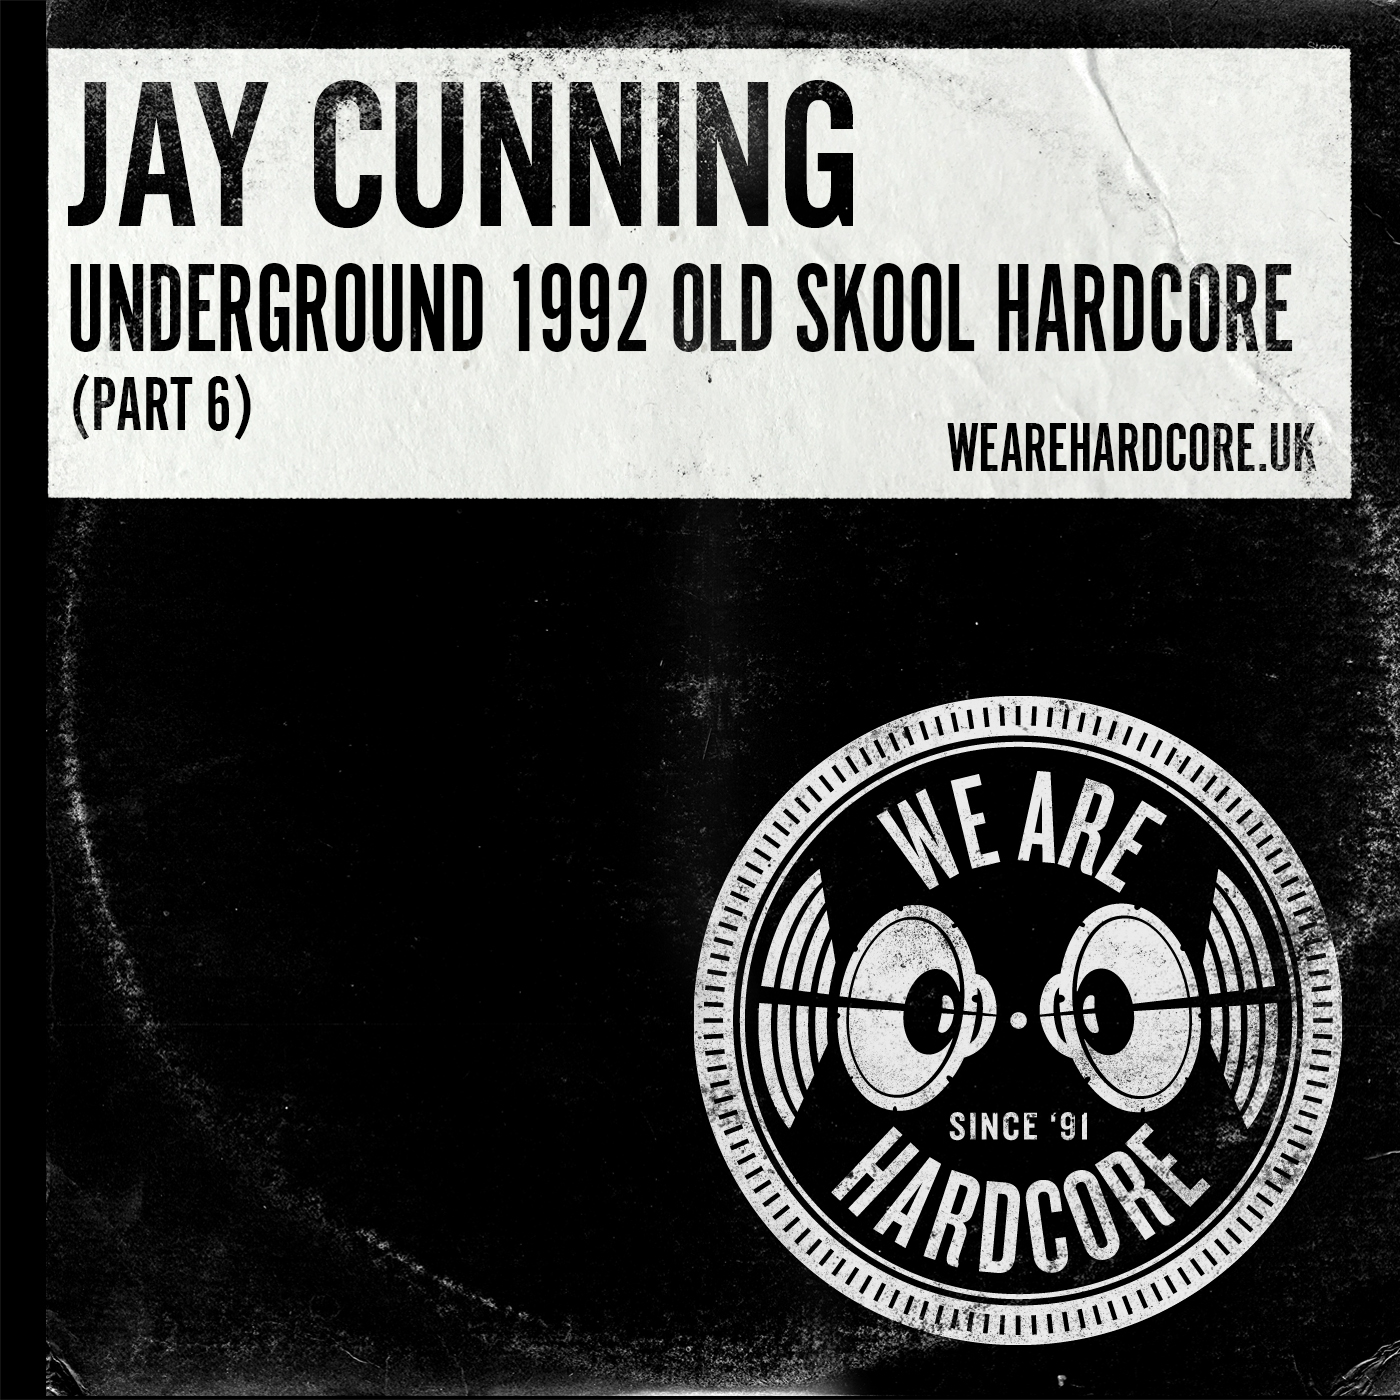 Underground 1992 Old Skool Hardcore - Jay Cunning WE ARE HARDCORE